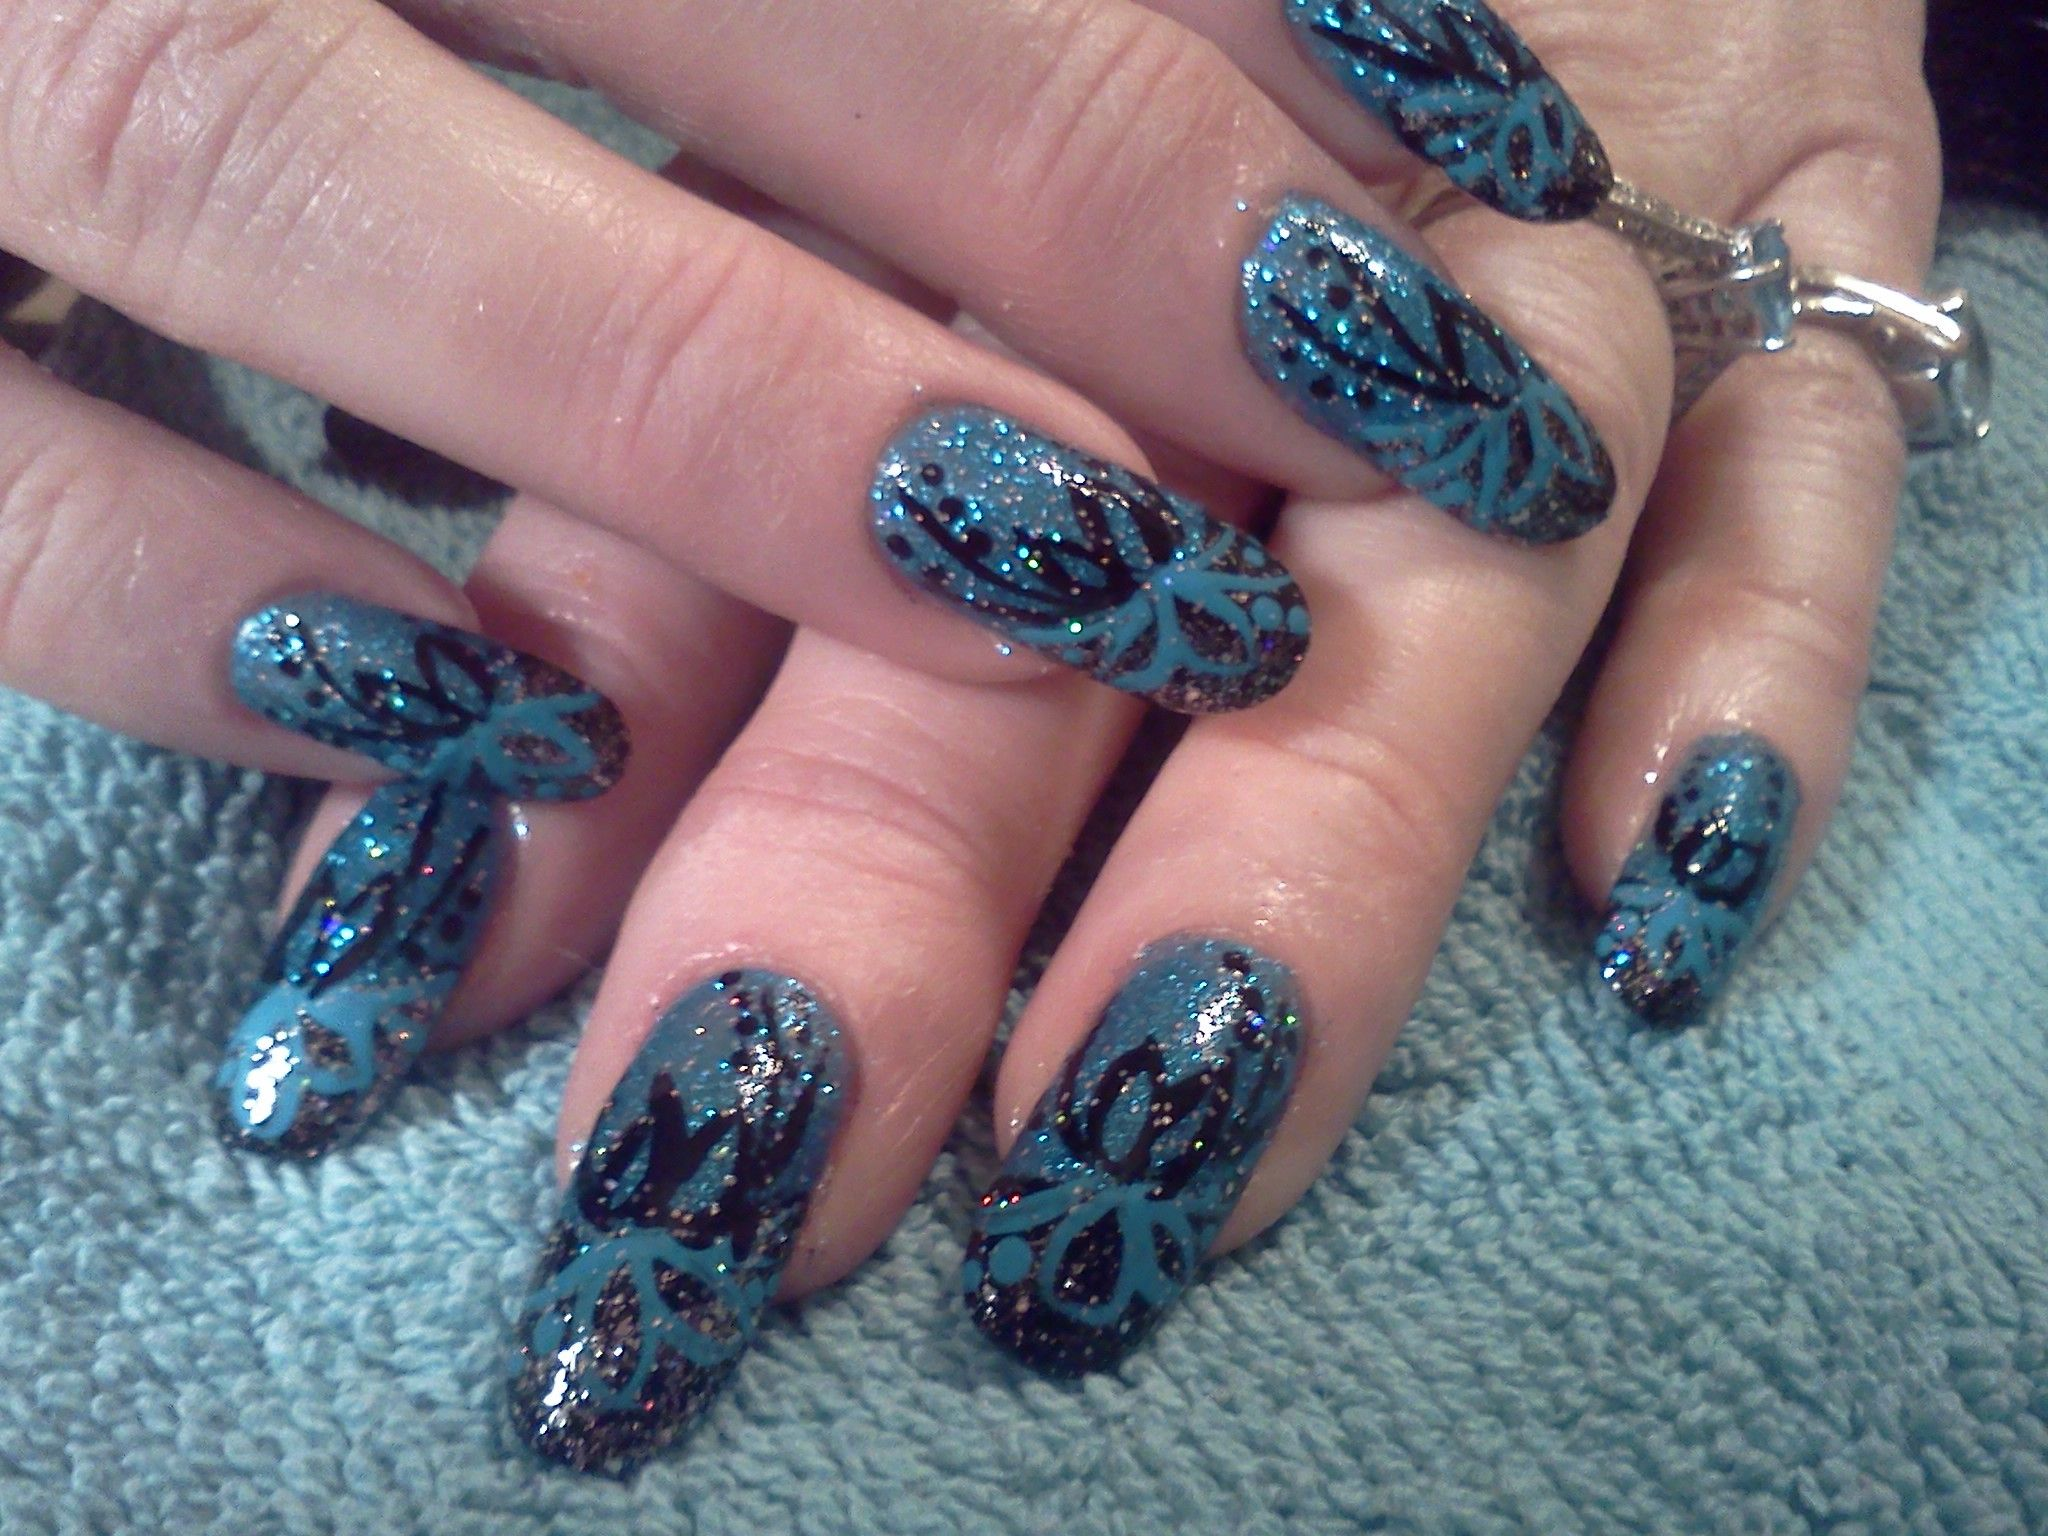 GO30 Prescription Nails with a Black and Blue pattern combined ...